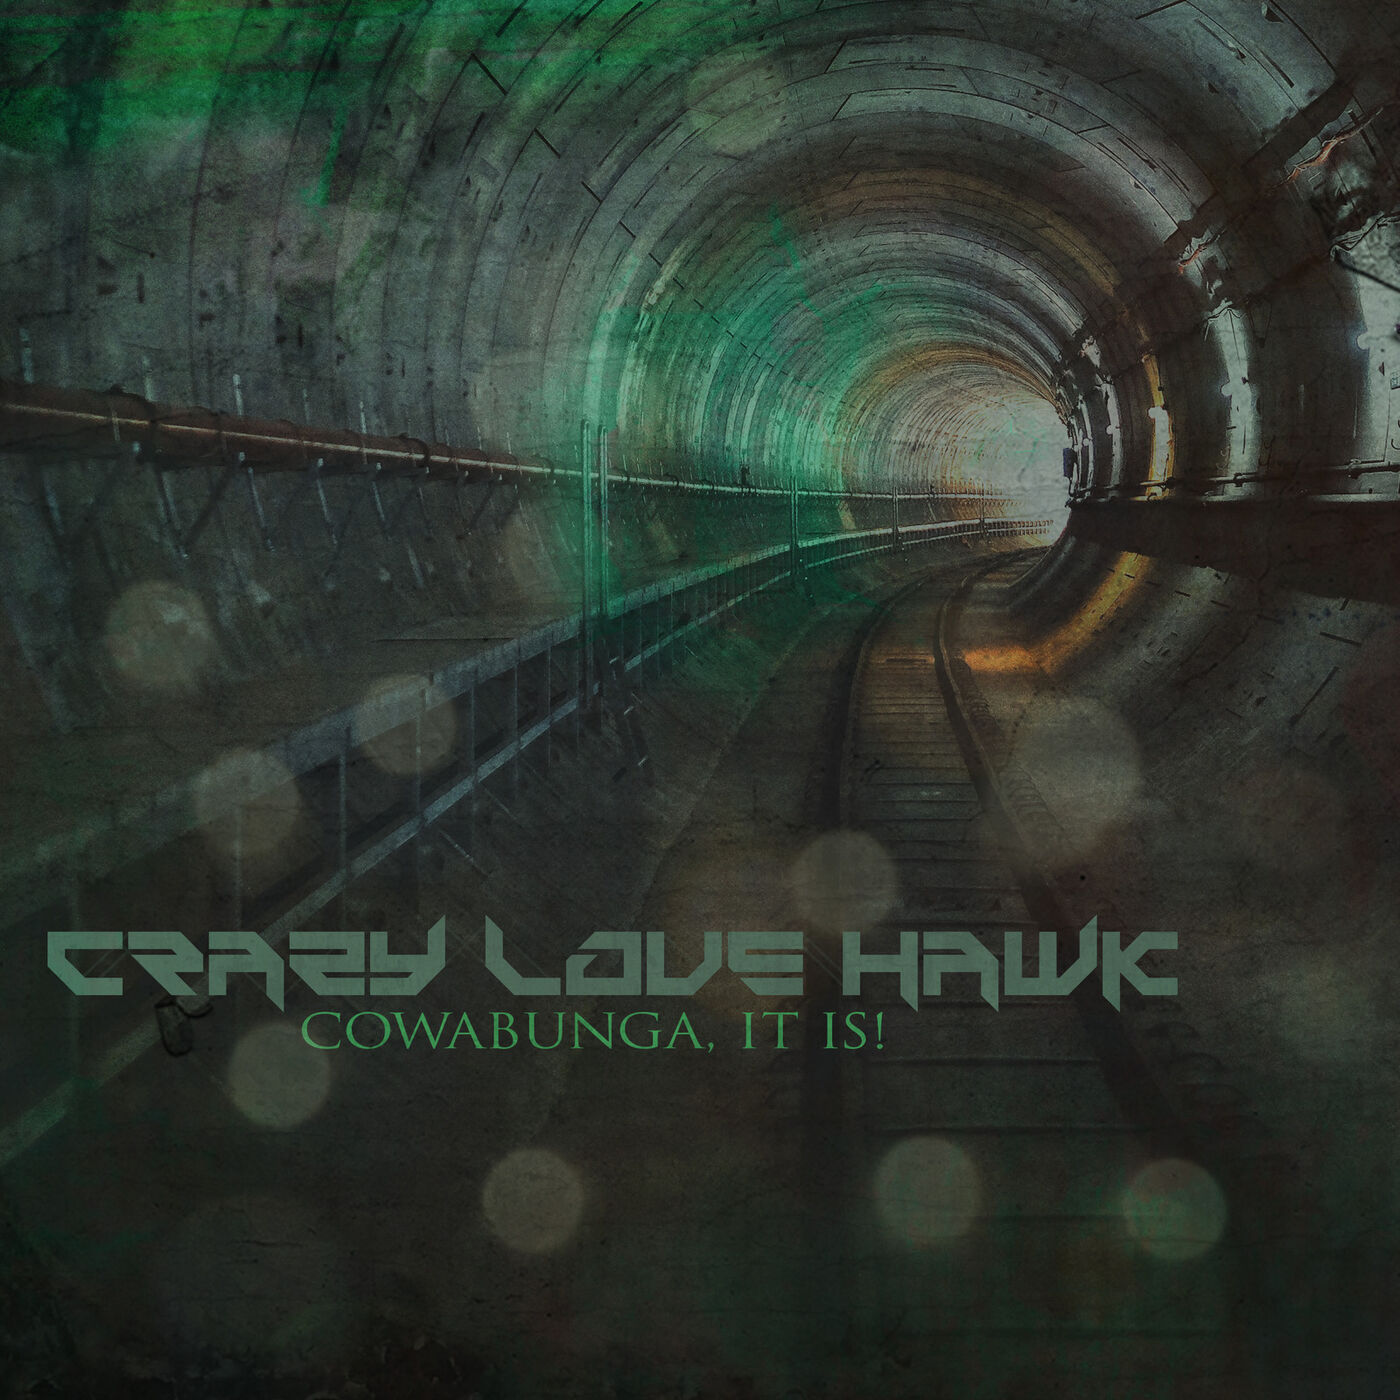 Crazy Love Hawk - Cowabunga, It Is! [single] (2020)